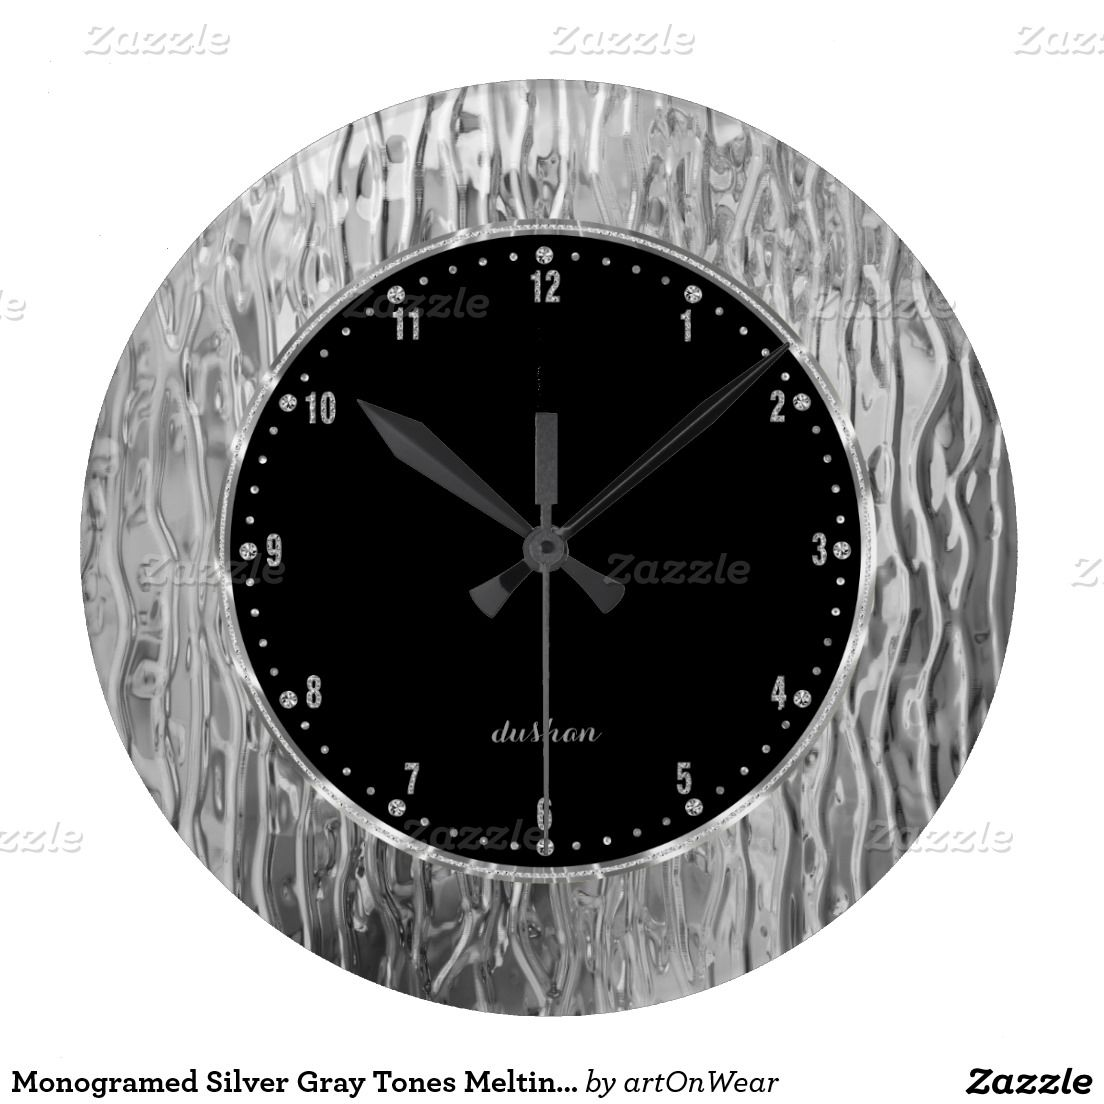 Monogramed Silver Gray Tones Melting Stained Glass Wall Clocks